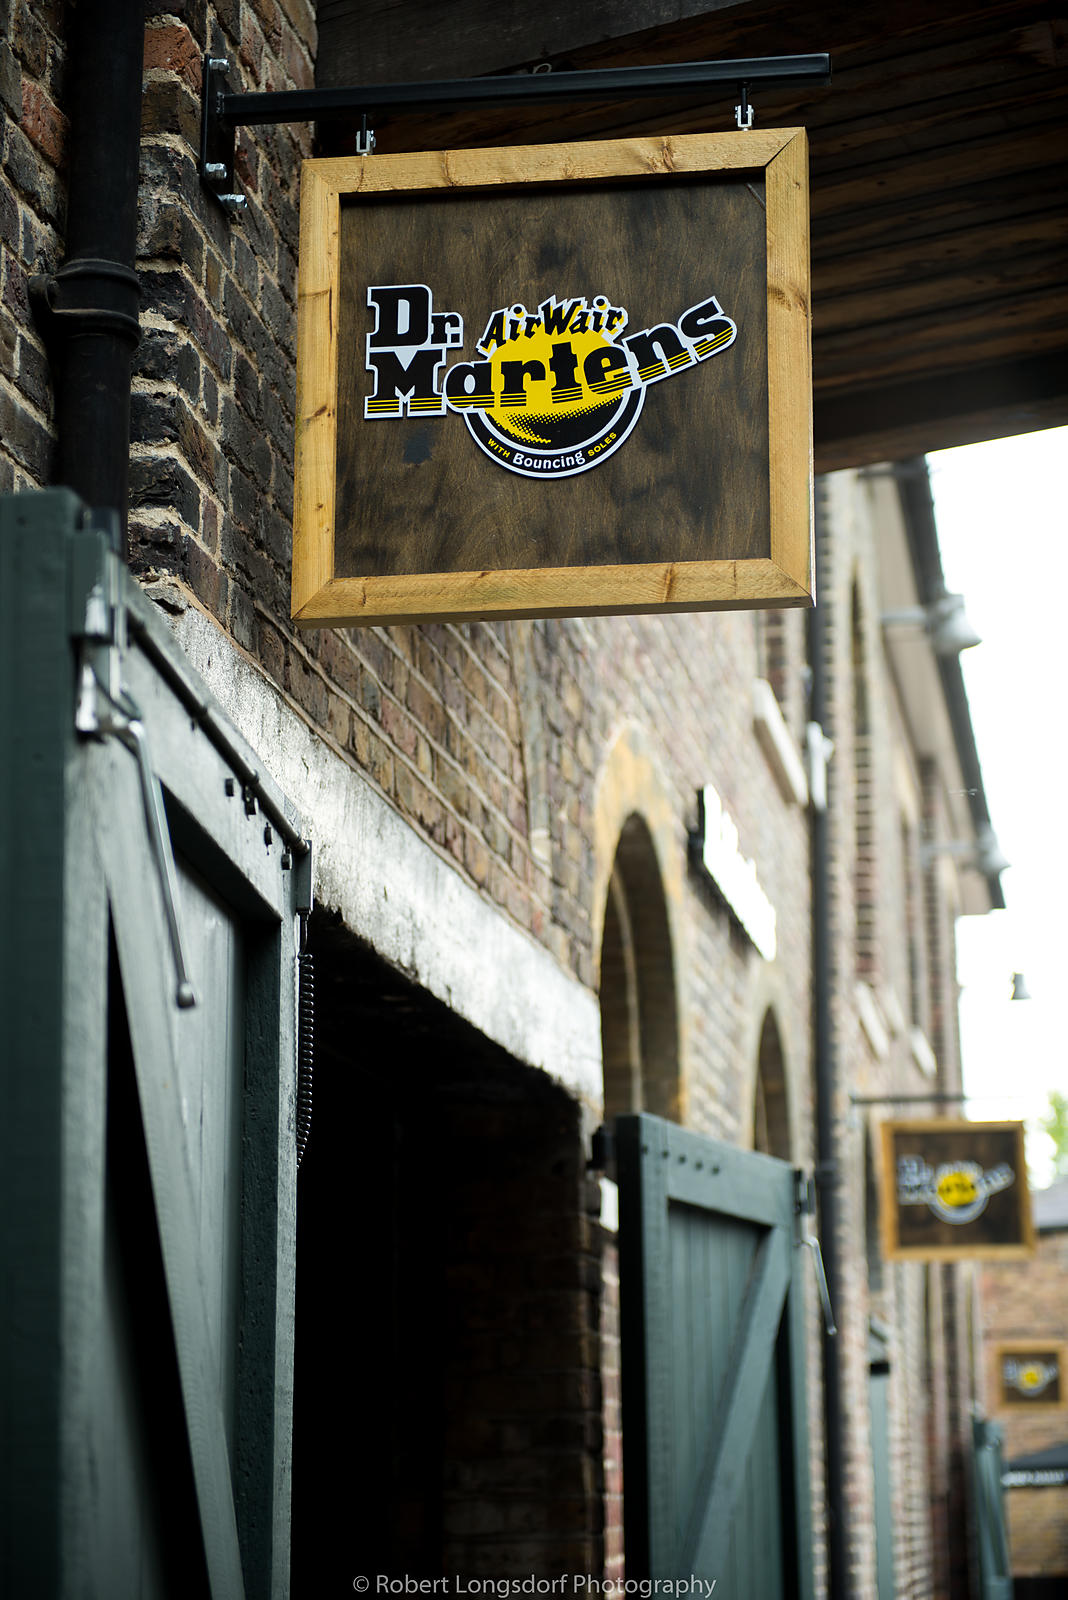 Dr. Martens Store in London